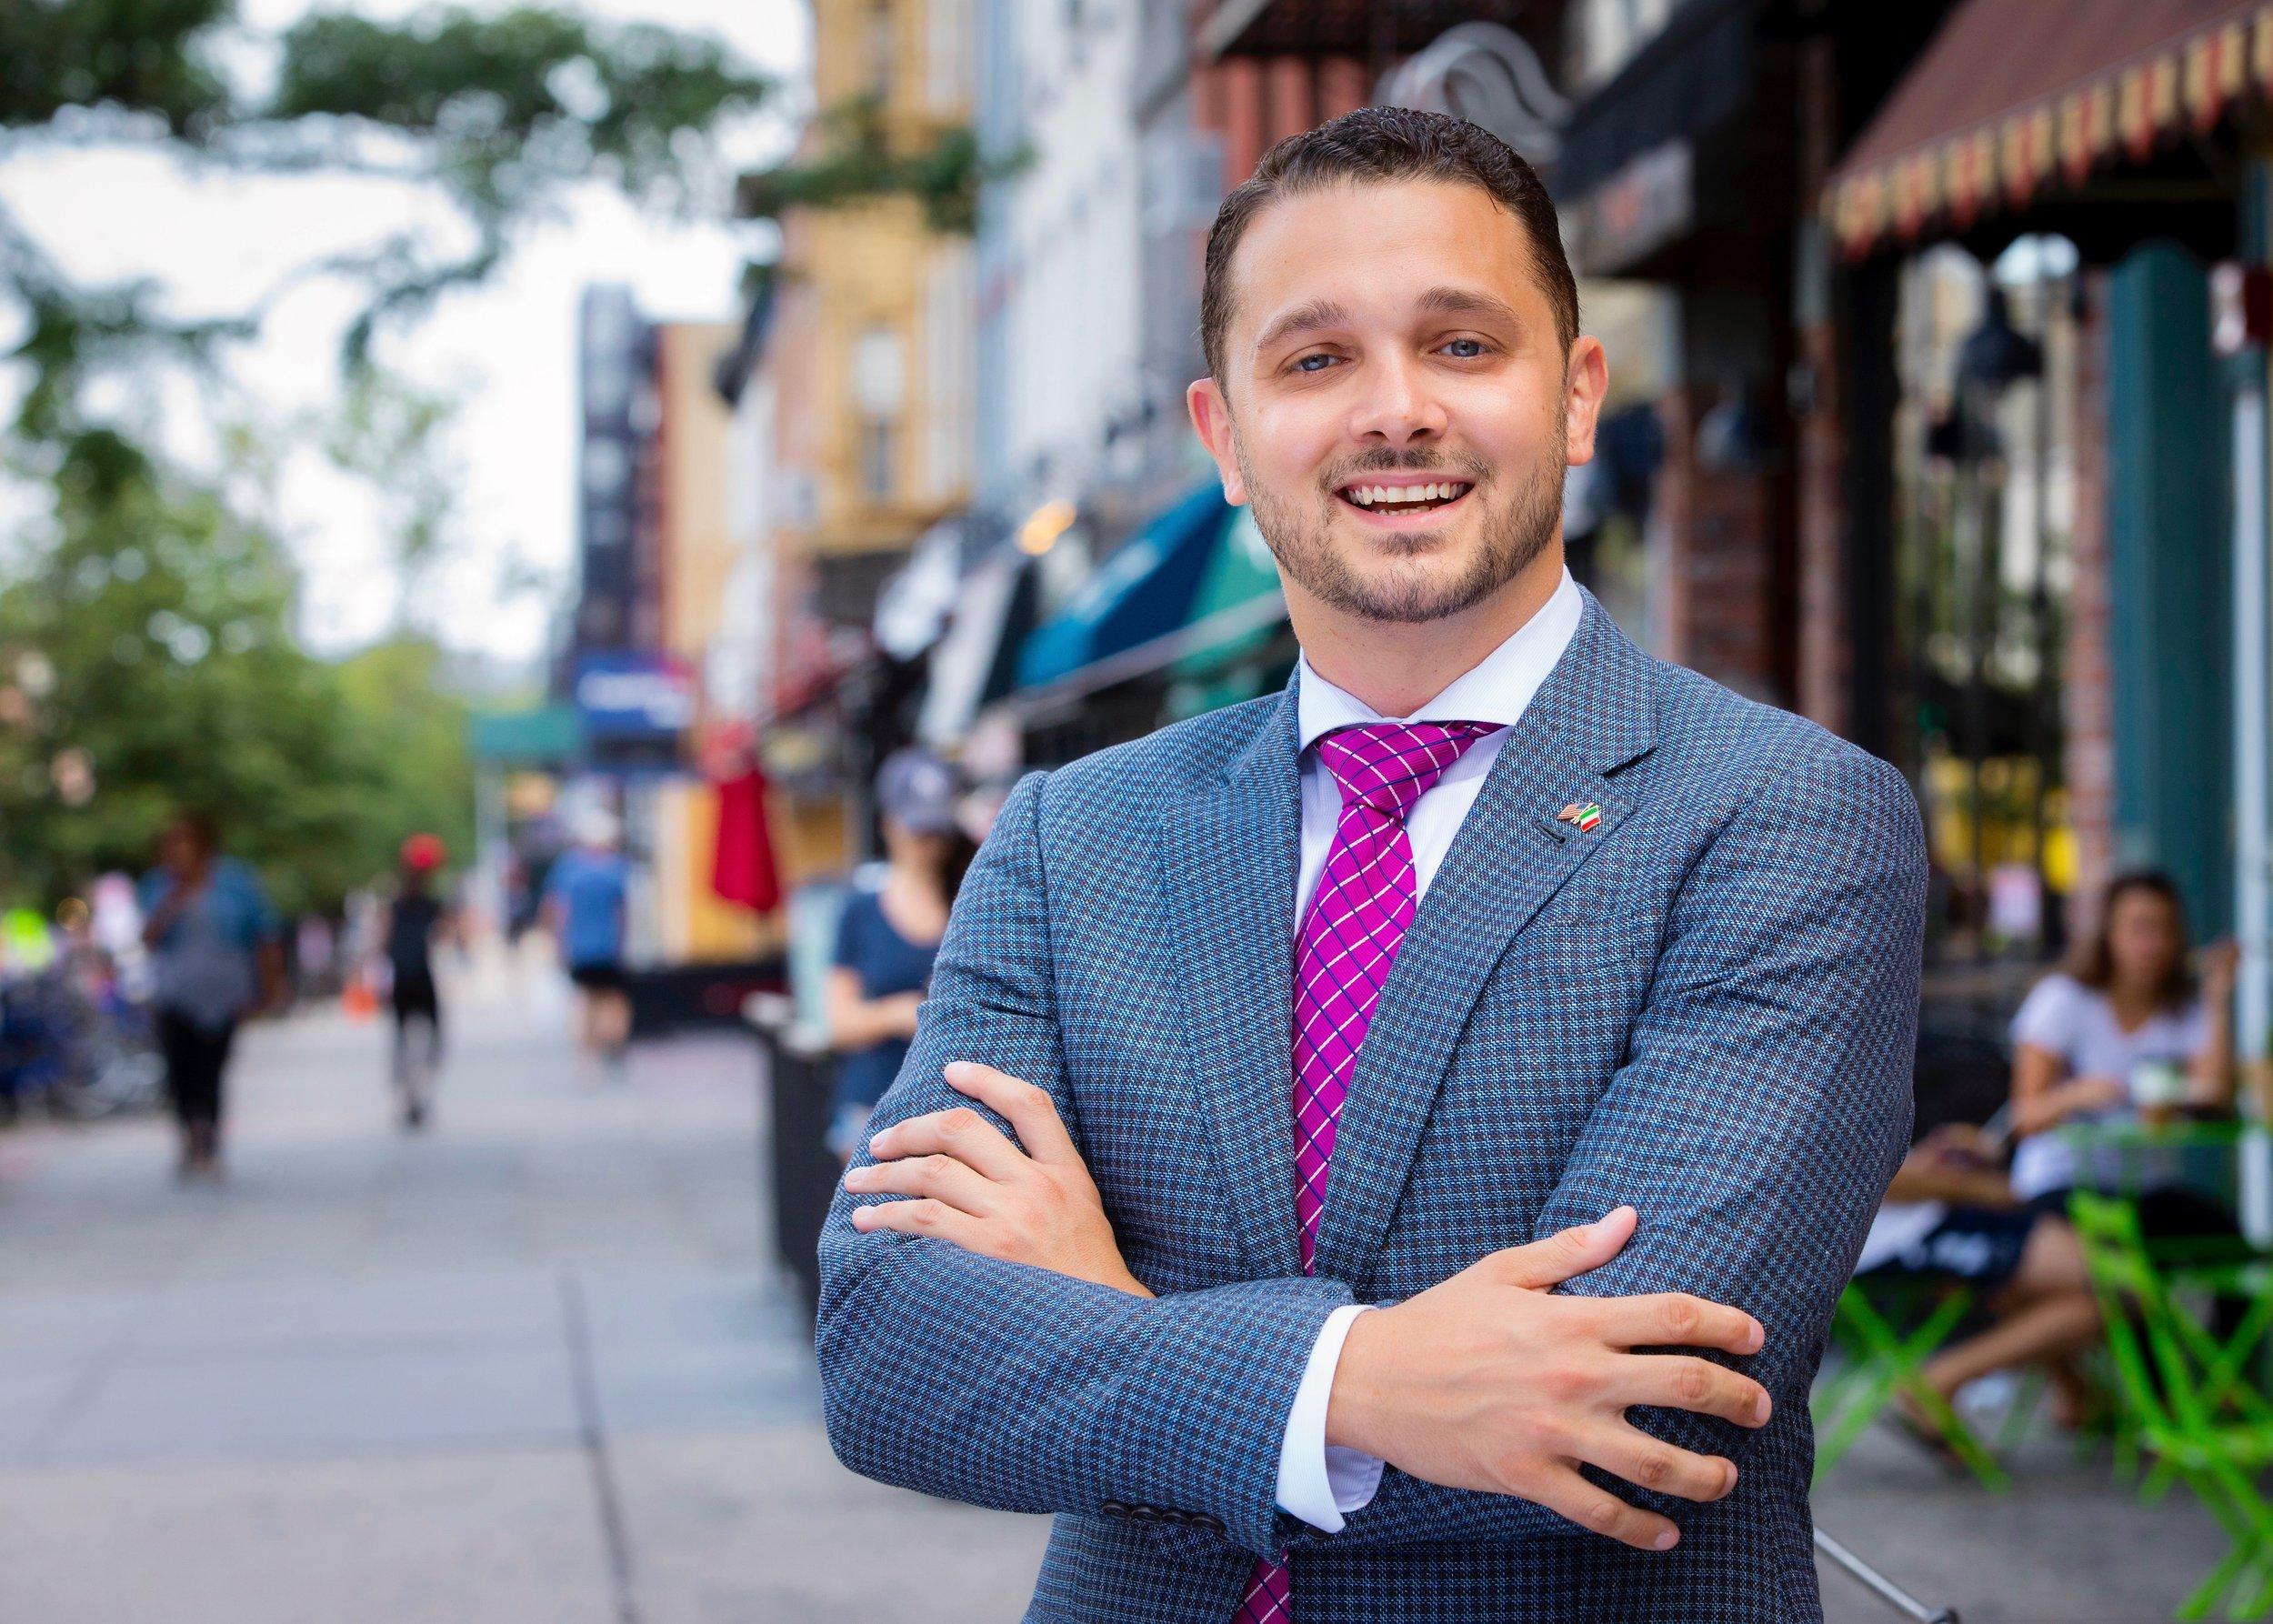 """""""It's time for new energy and new ideas to bring about the quality of life improvements our city needs and we all deserve.""""  -Mike DeFusco"""